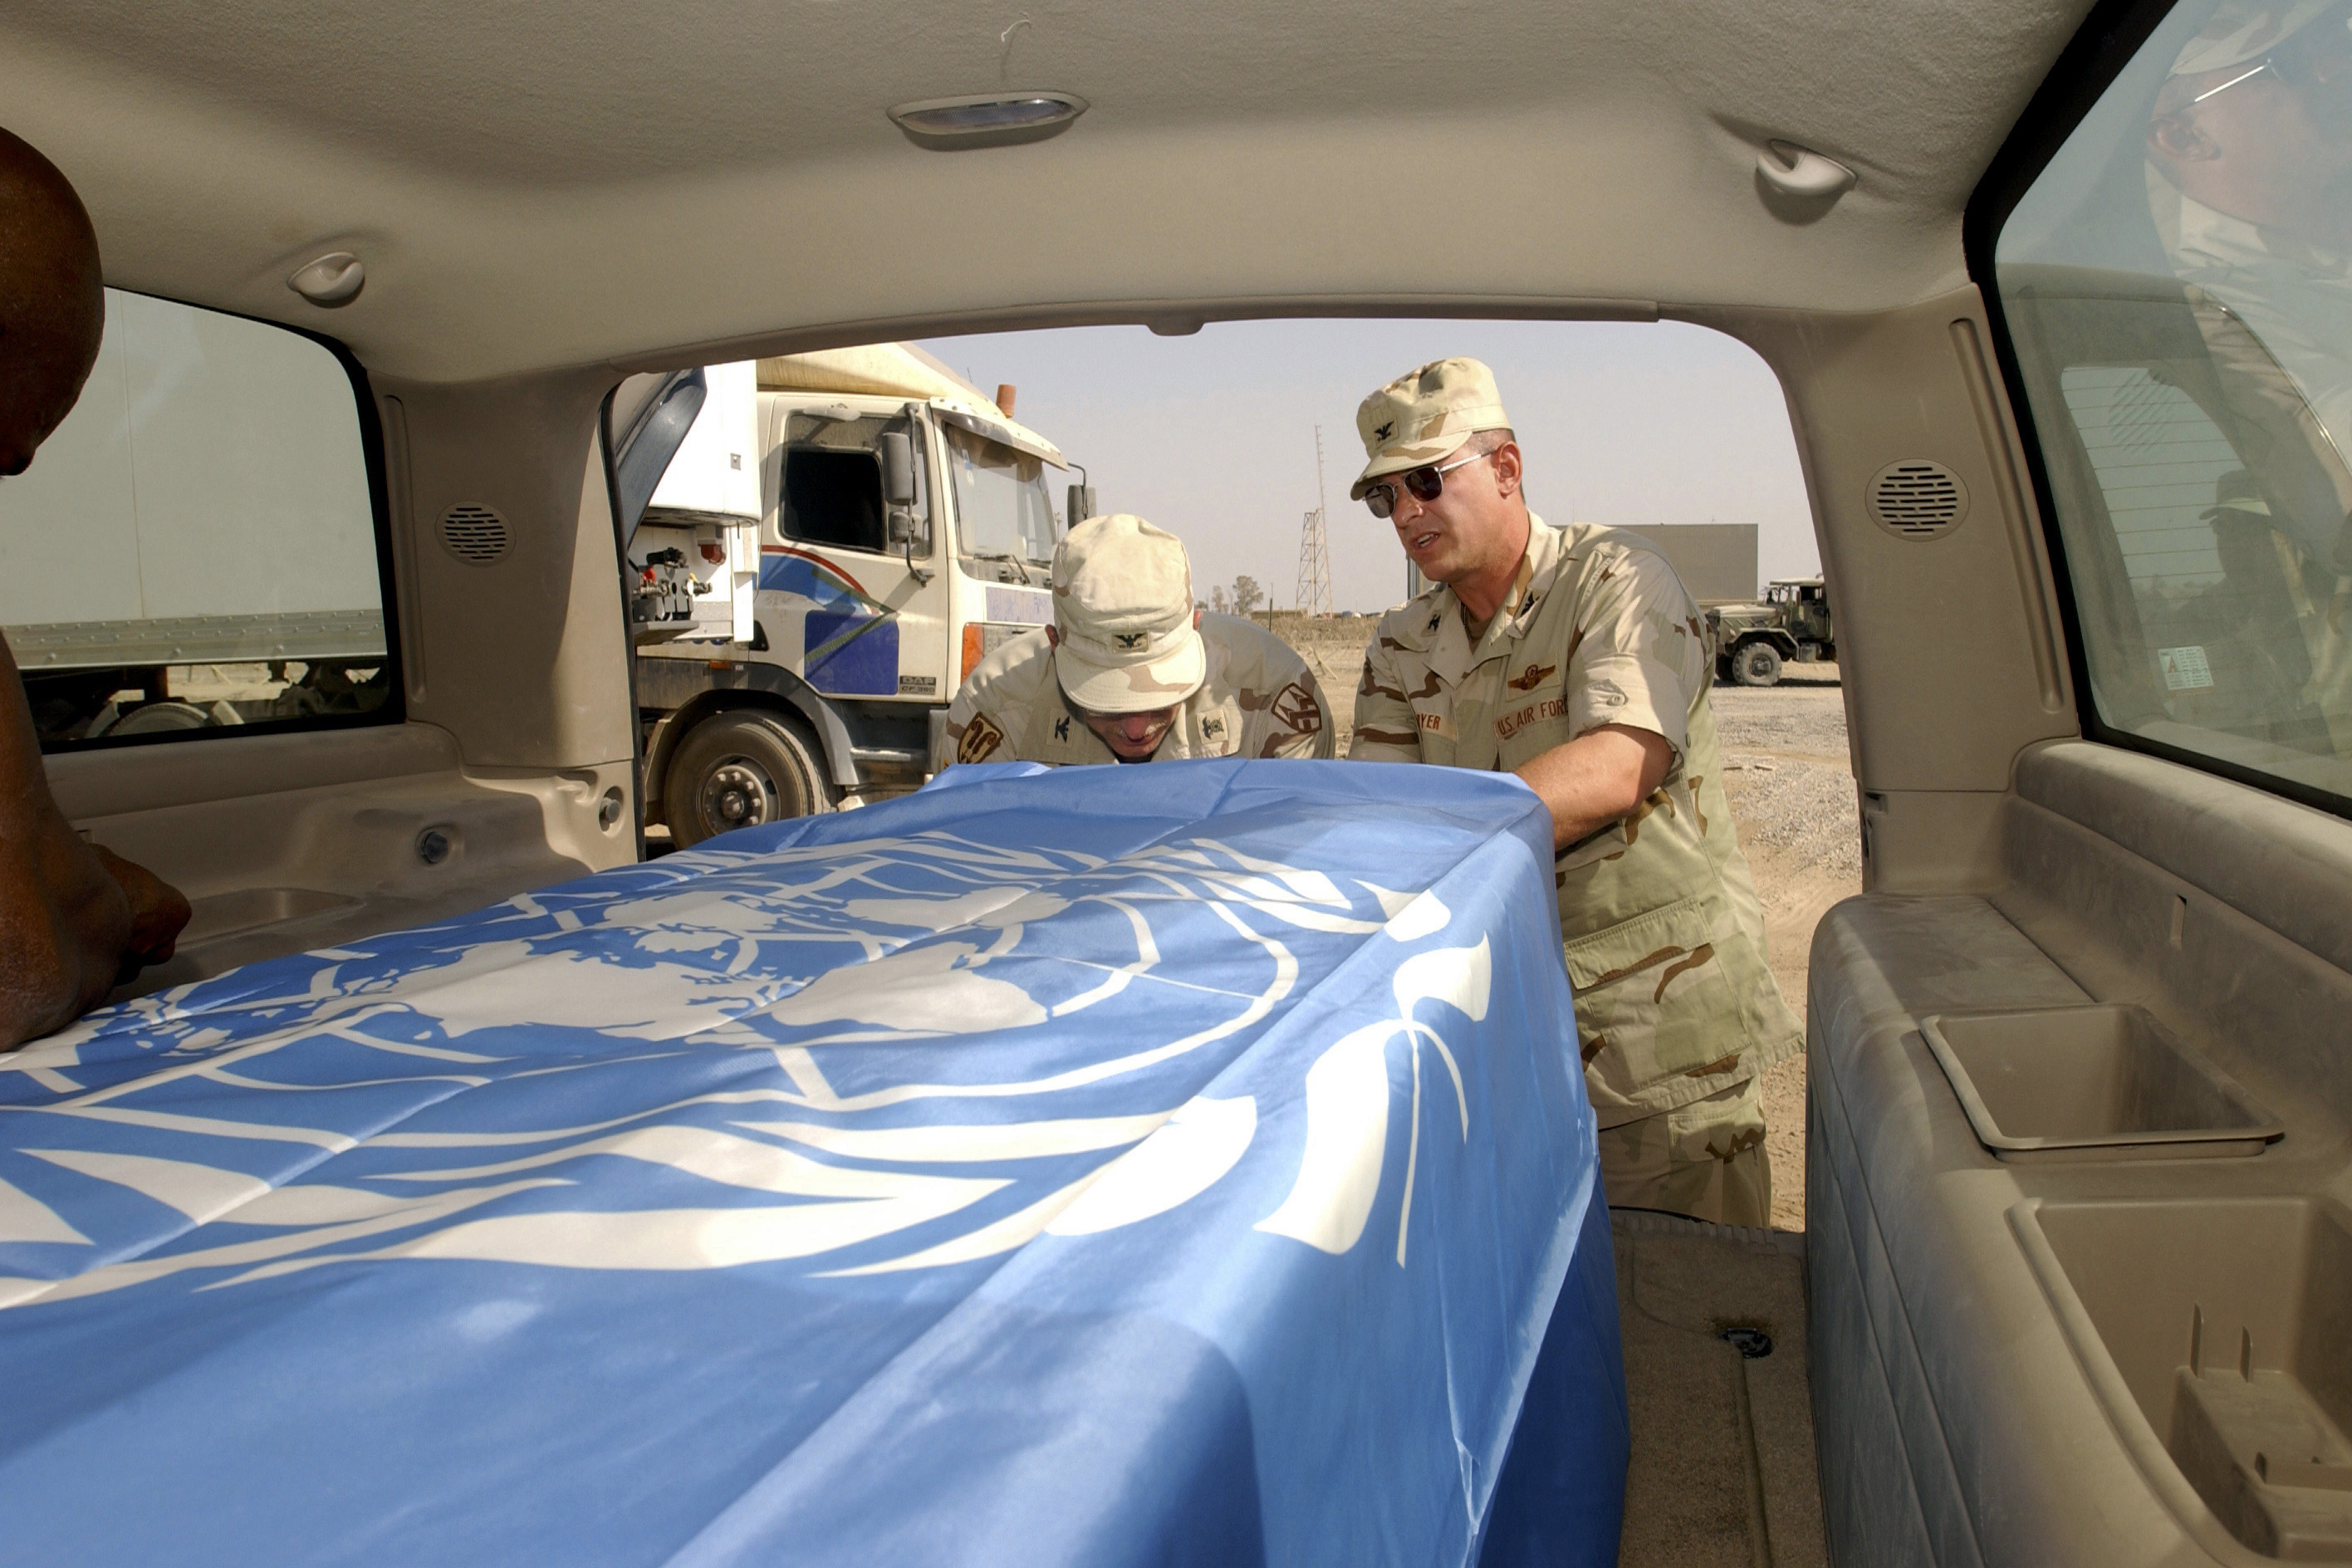 US Army (USA) Colonel (COL) Richard Dillon, Head of USA Mortuary Affairs, and US Air Force (USAF) COL Dennis Ployer, Commander, 447th Air Expeditionary Group (AEG), secure a United Nations (UN) flag over the casket of UN Chief Ambassador to Iraq, Sérgio Vieira de Mello, prior to a memorial service at the Baghdad International Airport. Sérgio Vieira de Mello was a victim of a homicide truck bombing at the United Nations Office of Humanitarian Coordinator in Baghdad, Iraq, during Operation IRAQI FREEDOM on August 19, 2003.